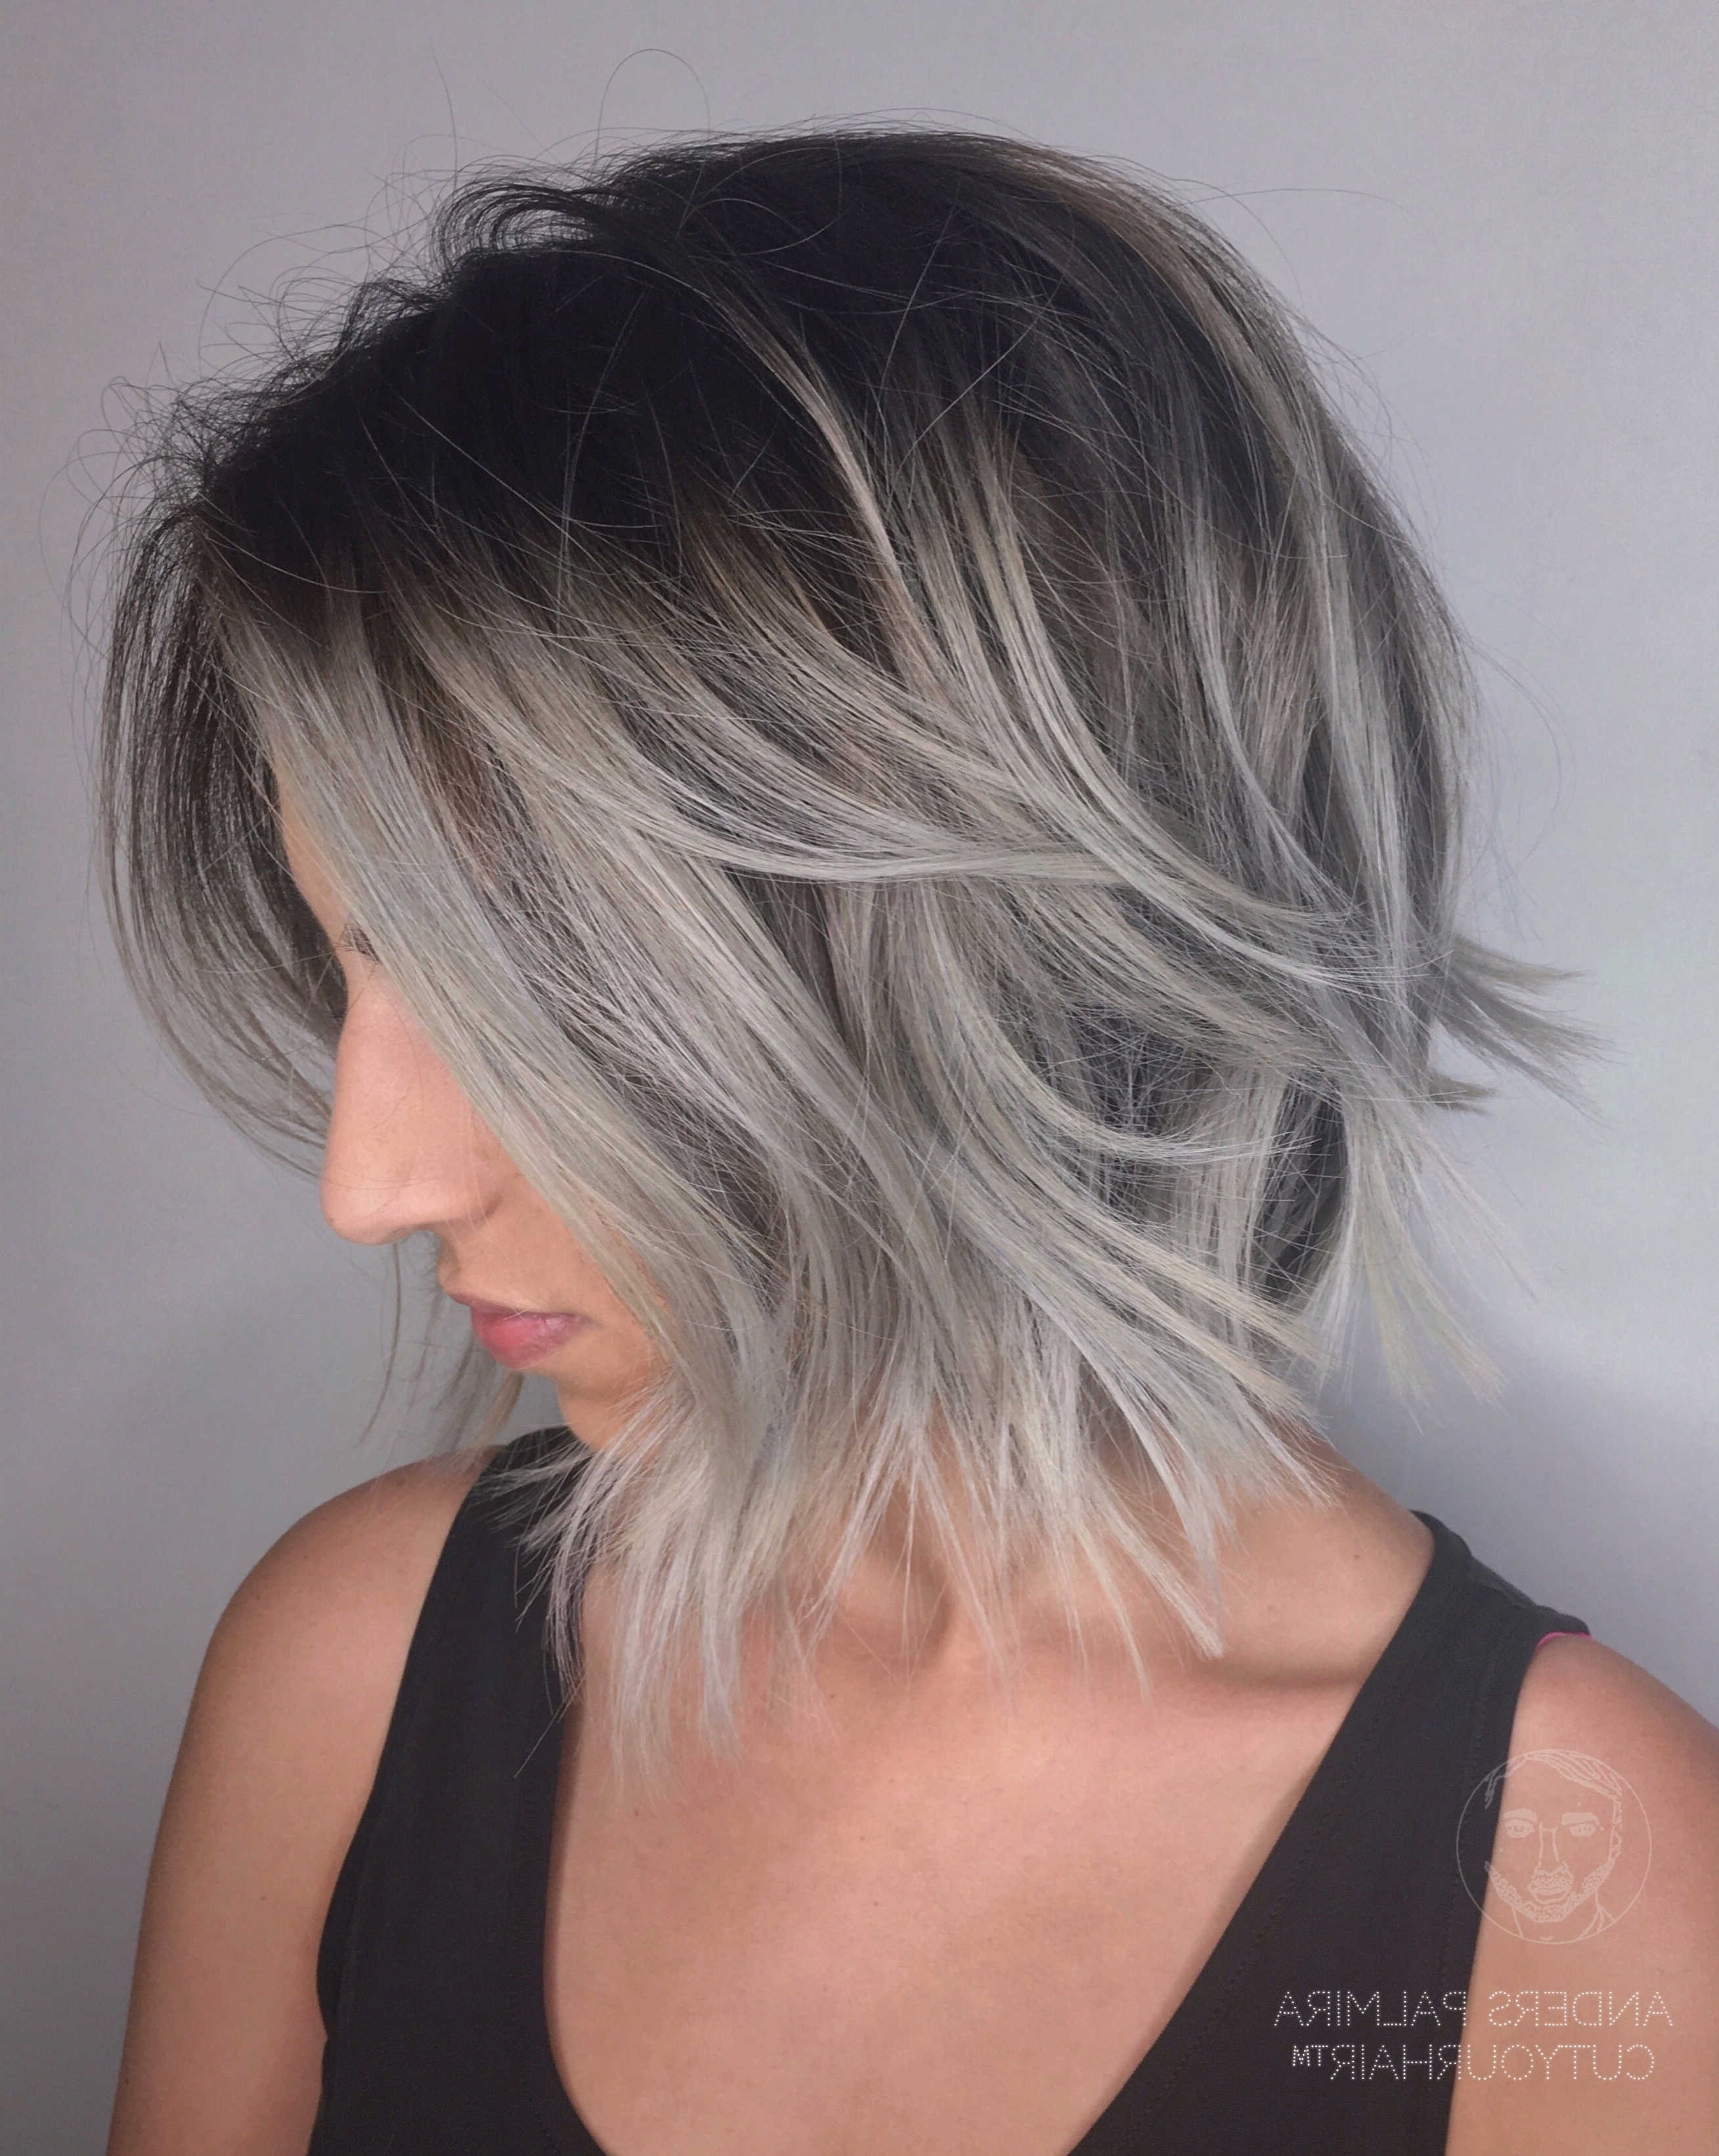 Aveda Wavy Long Blonde Bob Short Hair Beach Wave Medium Ideas Lob Within Most Recently Released Short Shaggy Gray Hairstyles (View 2 of 15)